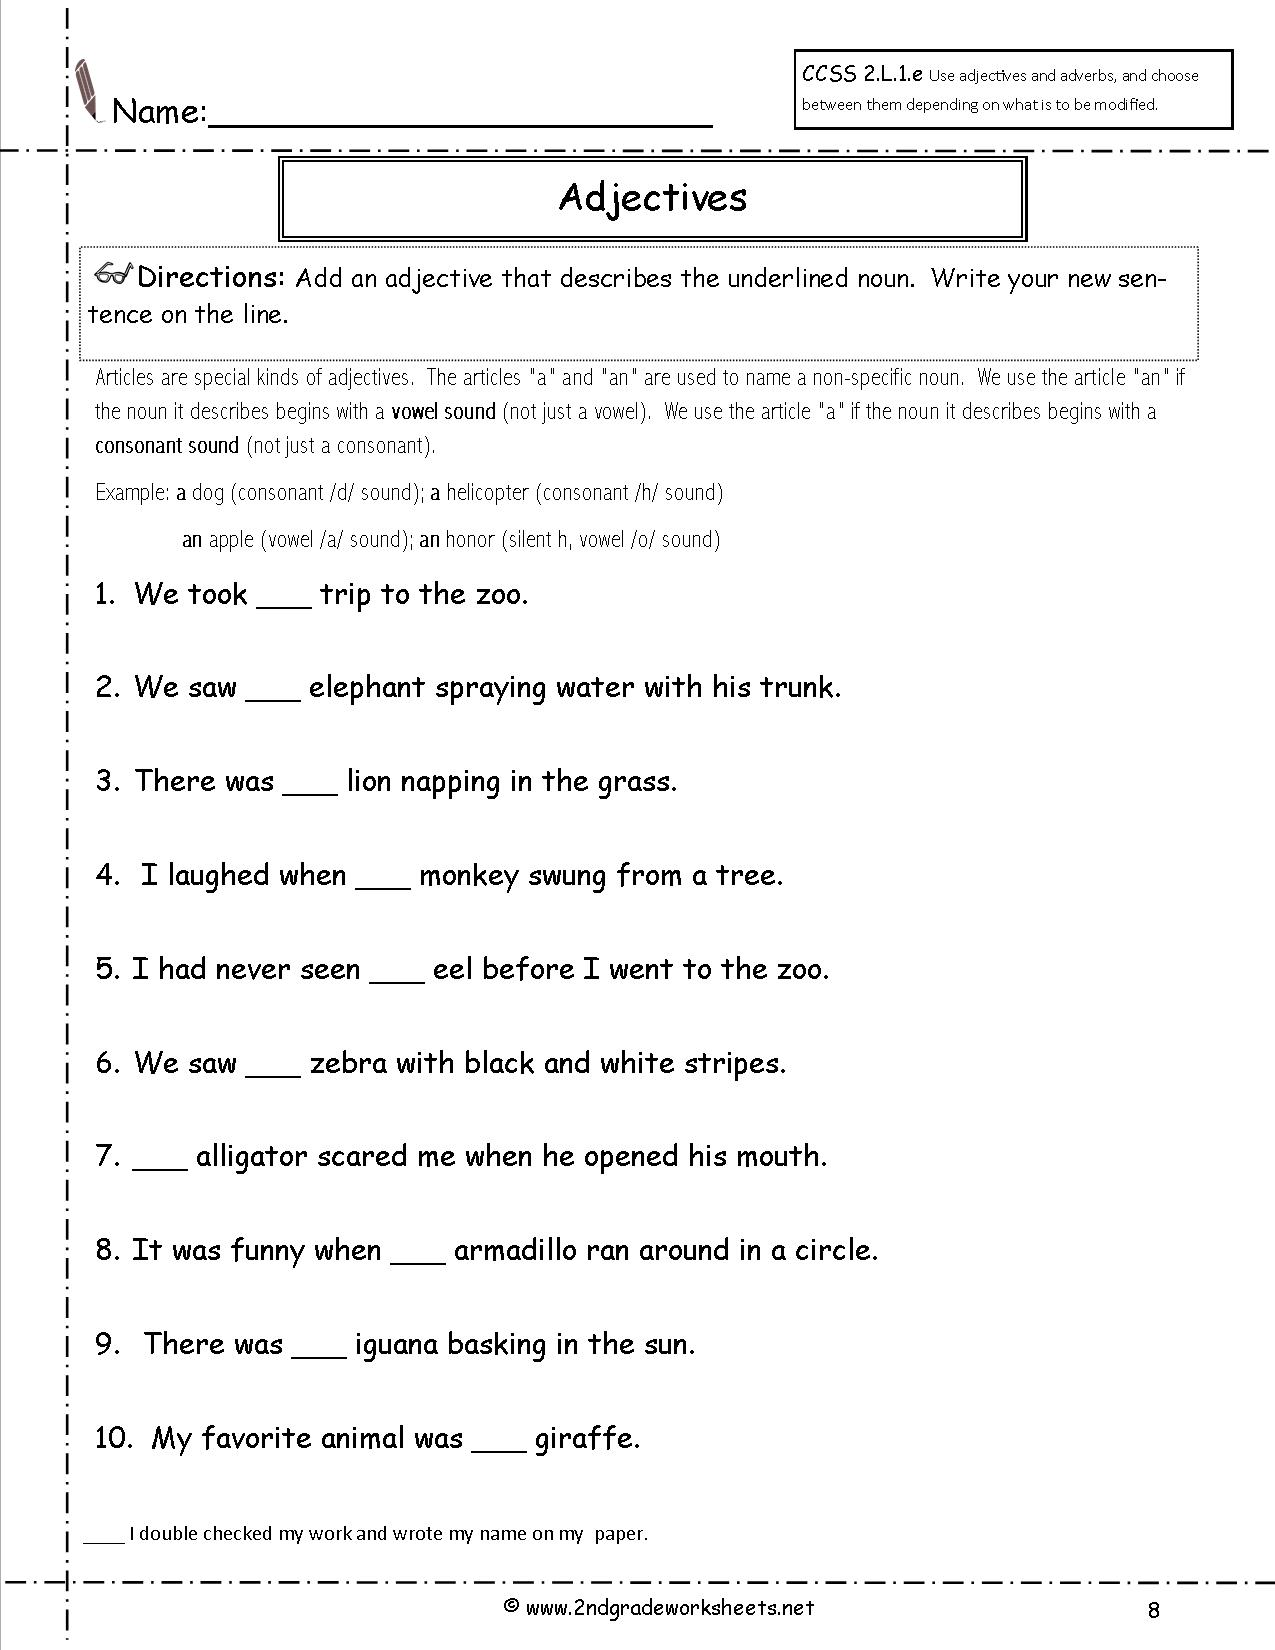 Free Worksheet Free Adjective Worksheets free using adjectives worksheets a or an worksheet